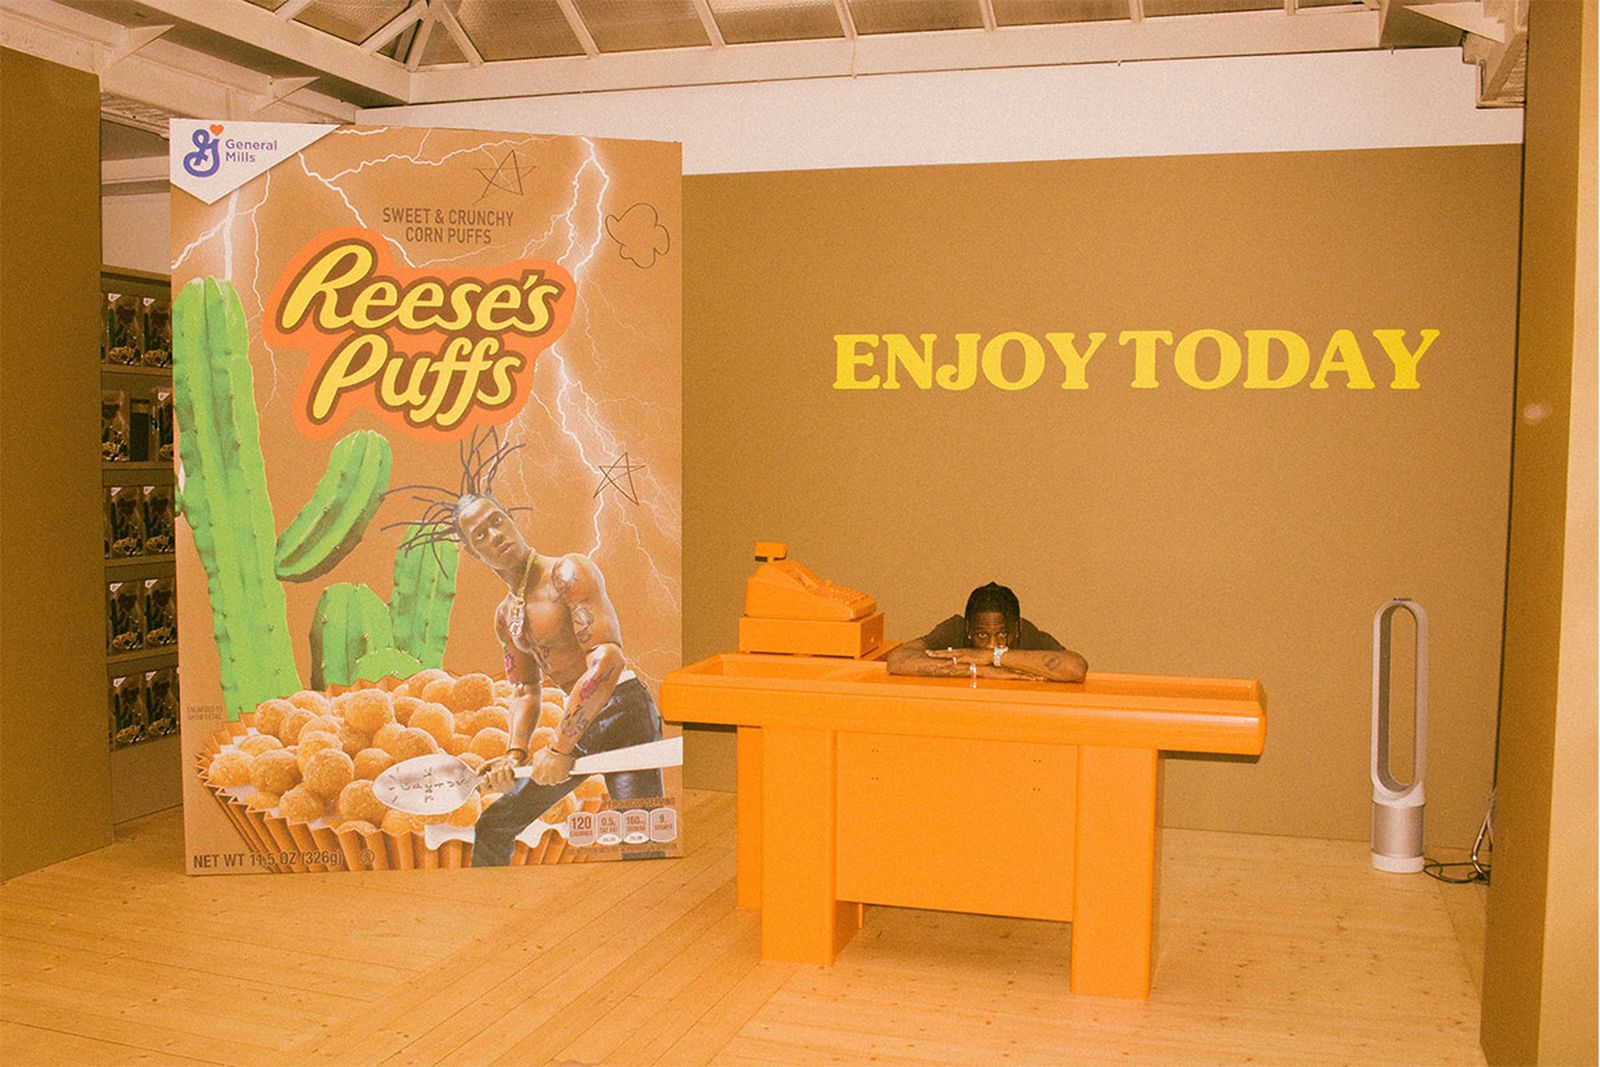 travis scott reeses puffs sold out Reese's puffs